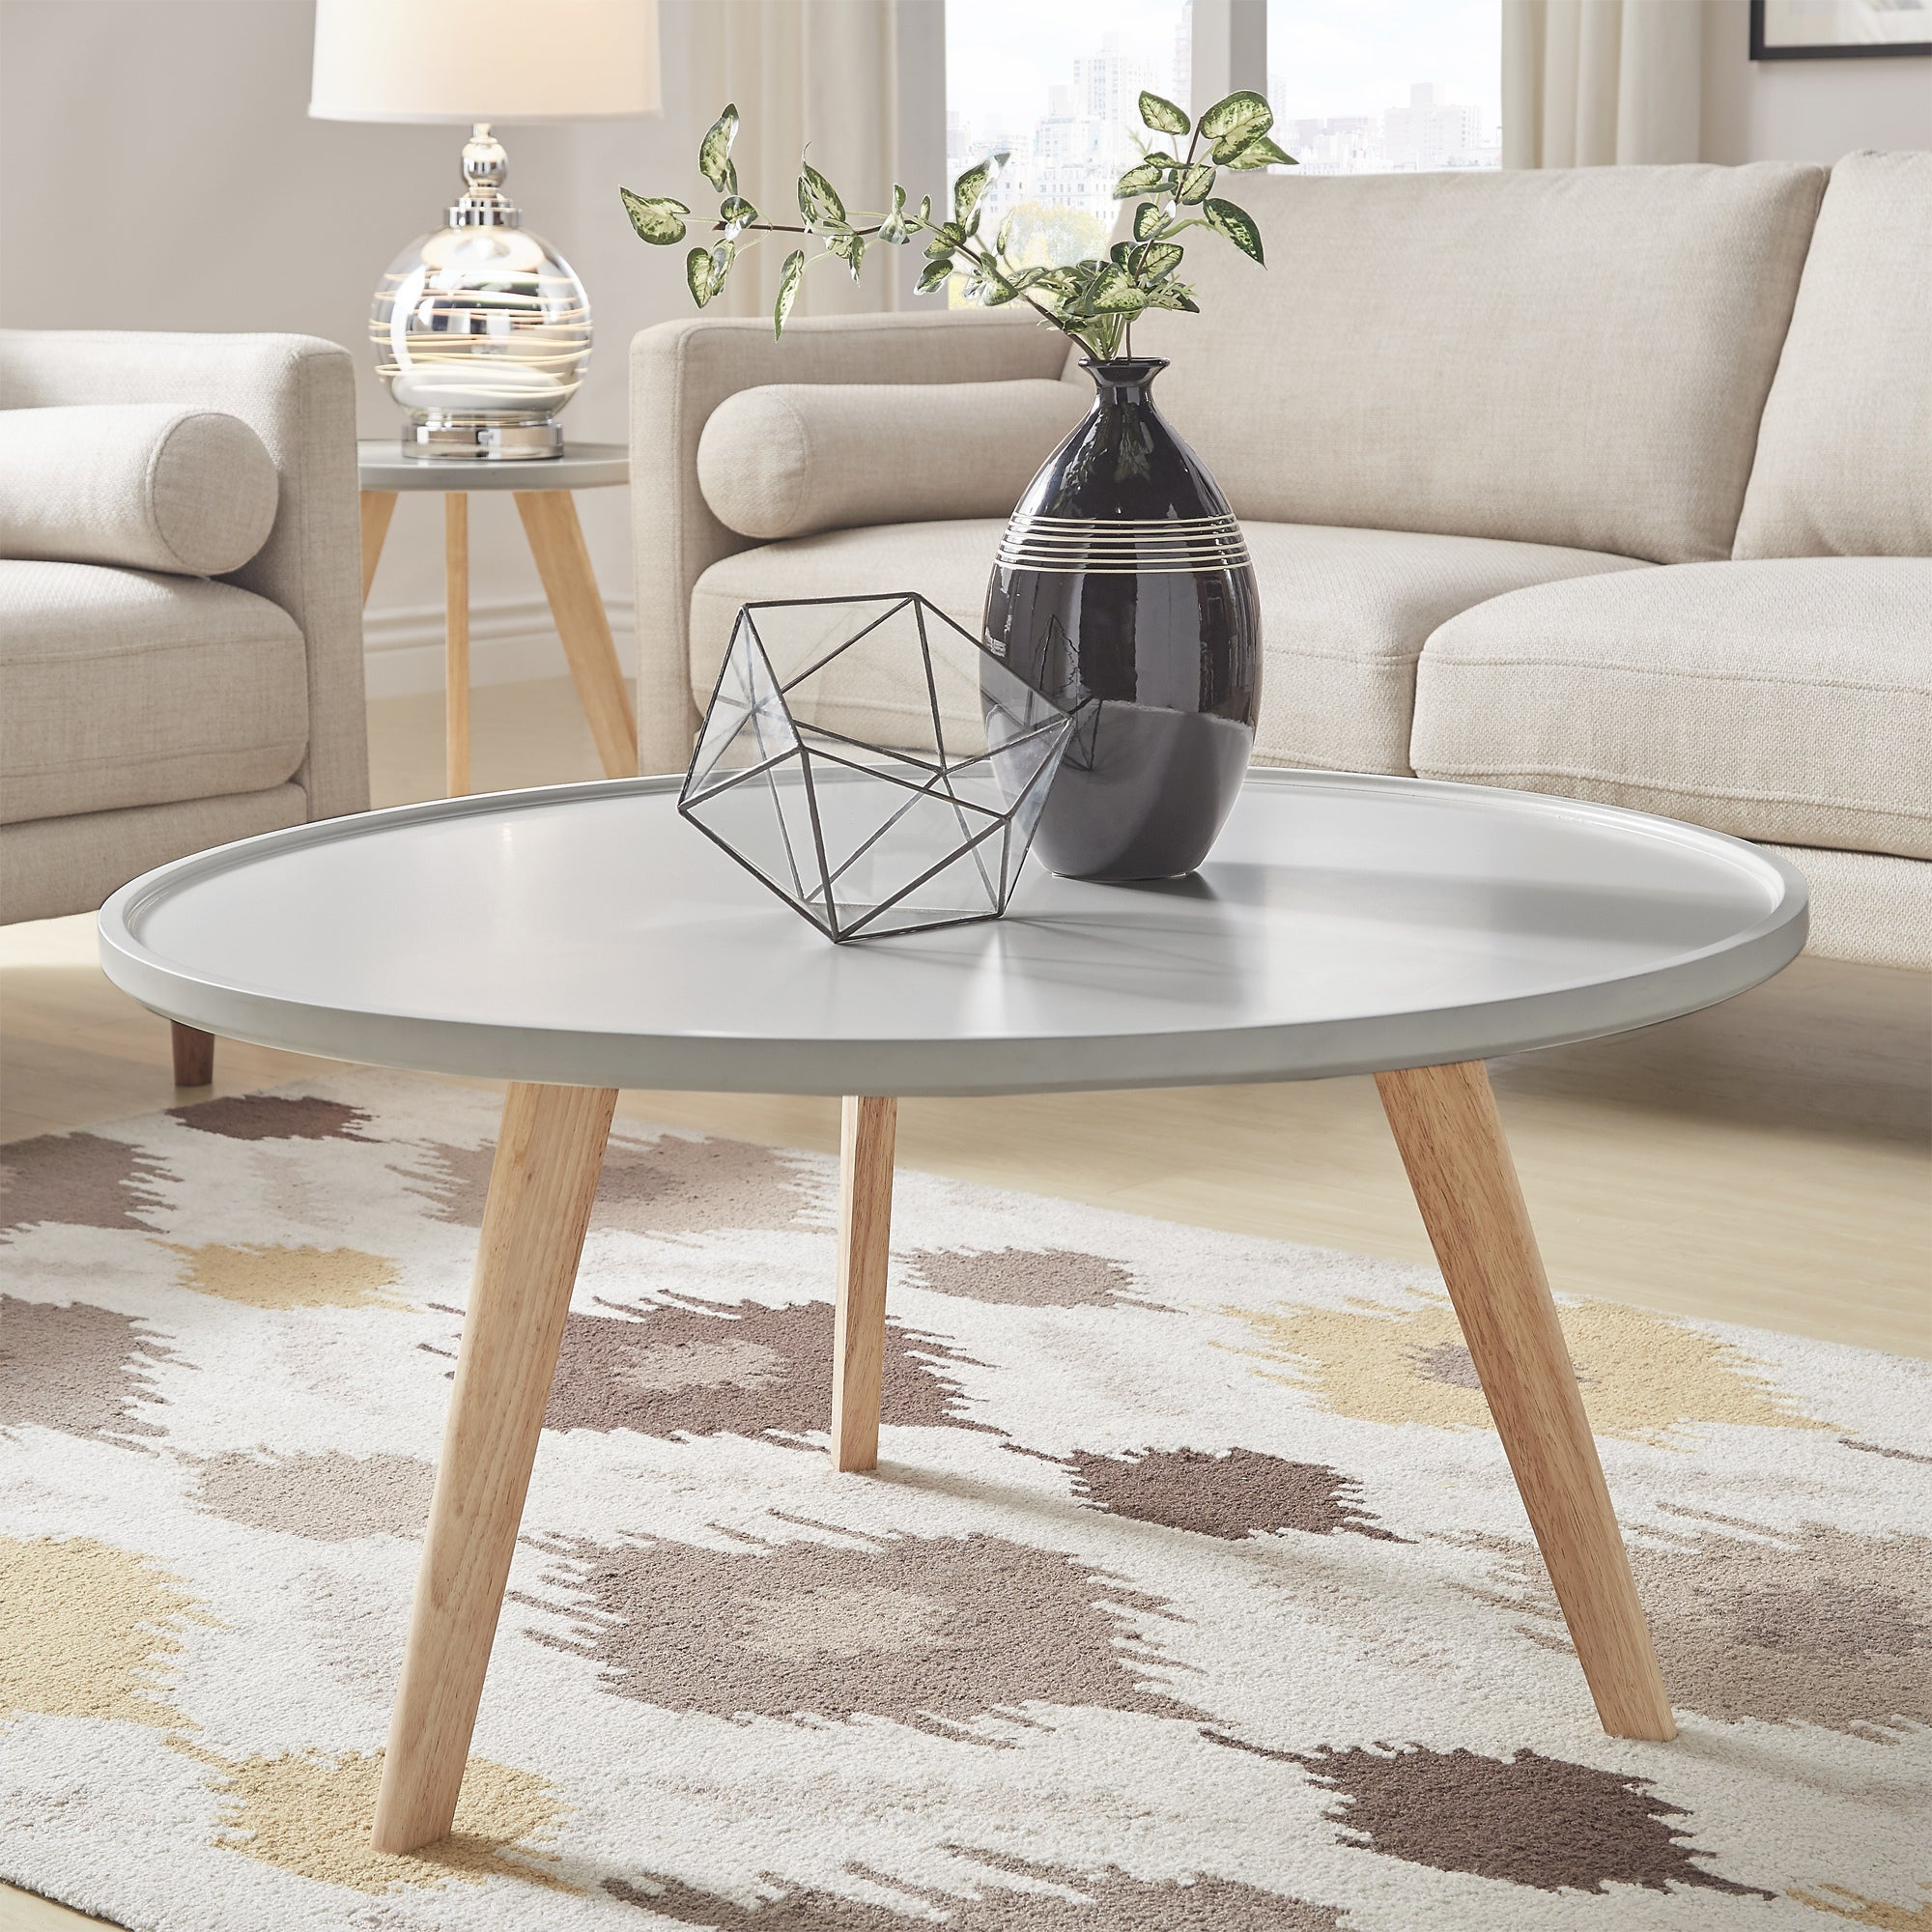 coffee table tray ideas Home Design